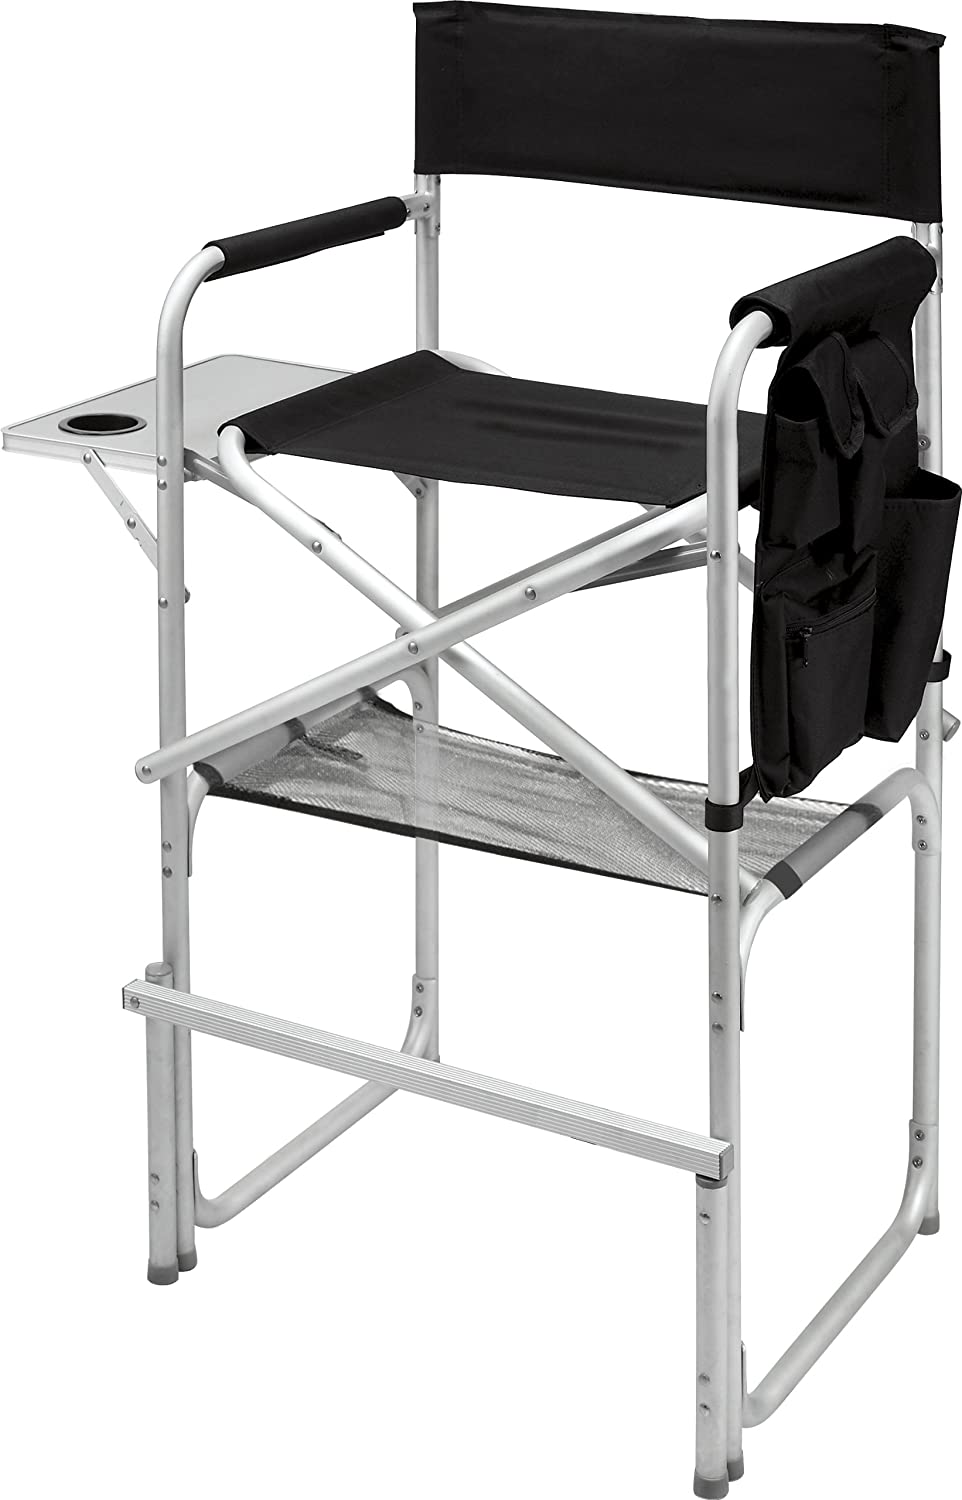 New Executive Heavy Duty VIP Tall Folding Outdoor